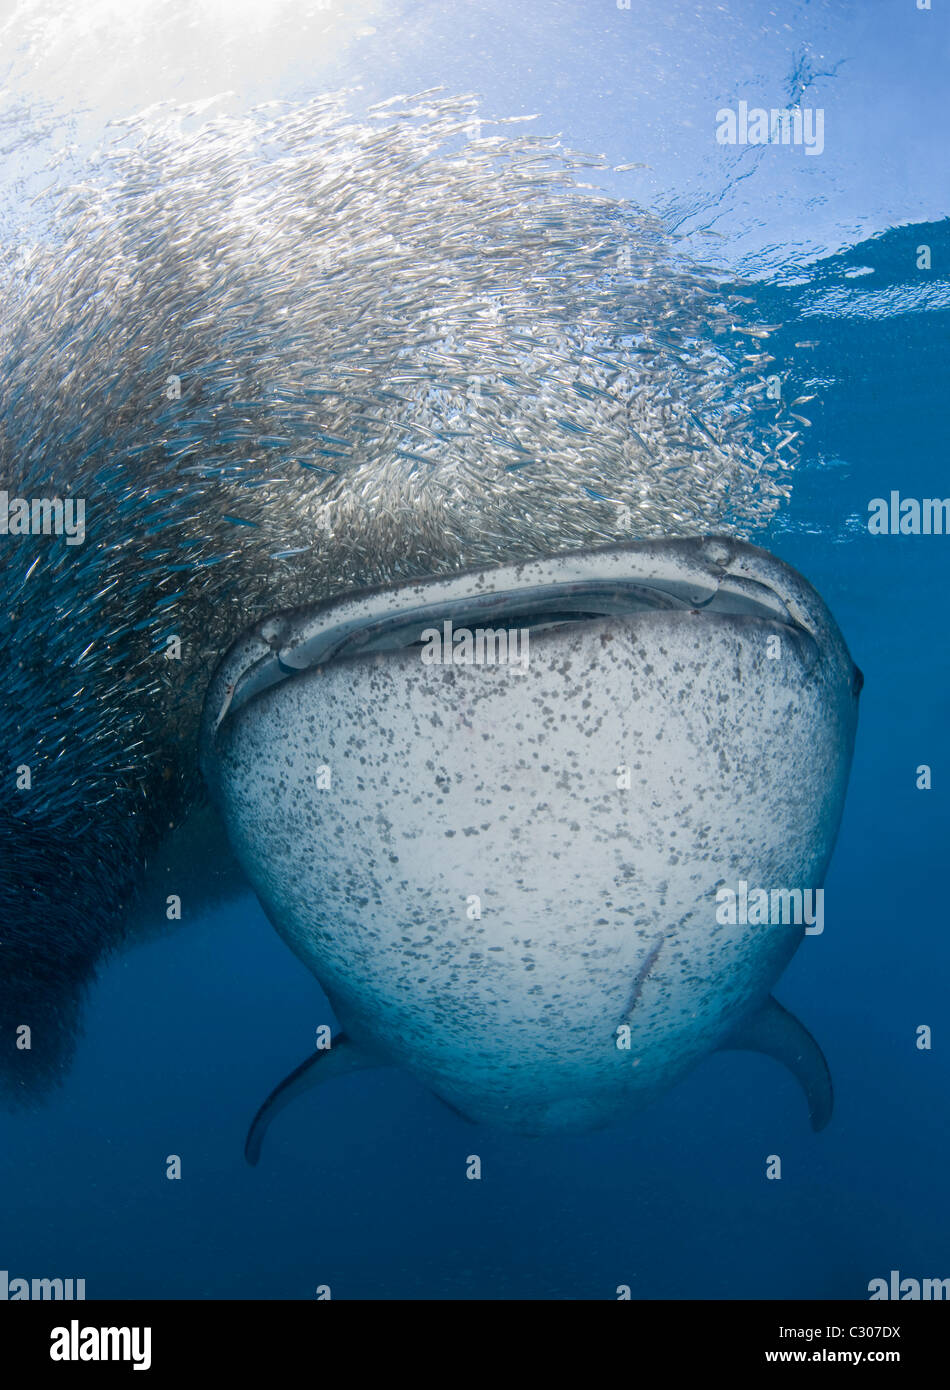 Whale shark (Rhincodon typus) feeding on baitball of silversides - Stock Image